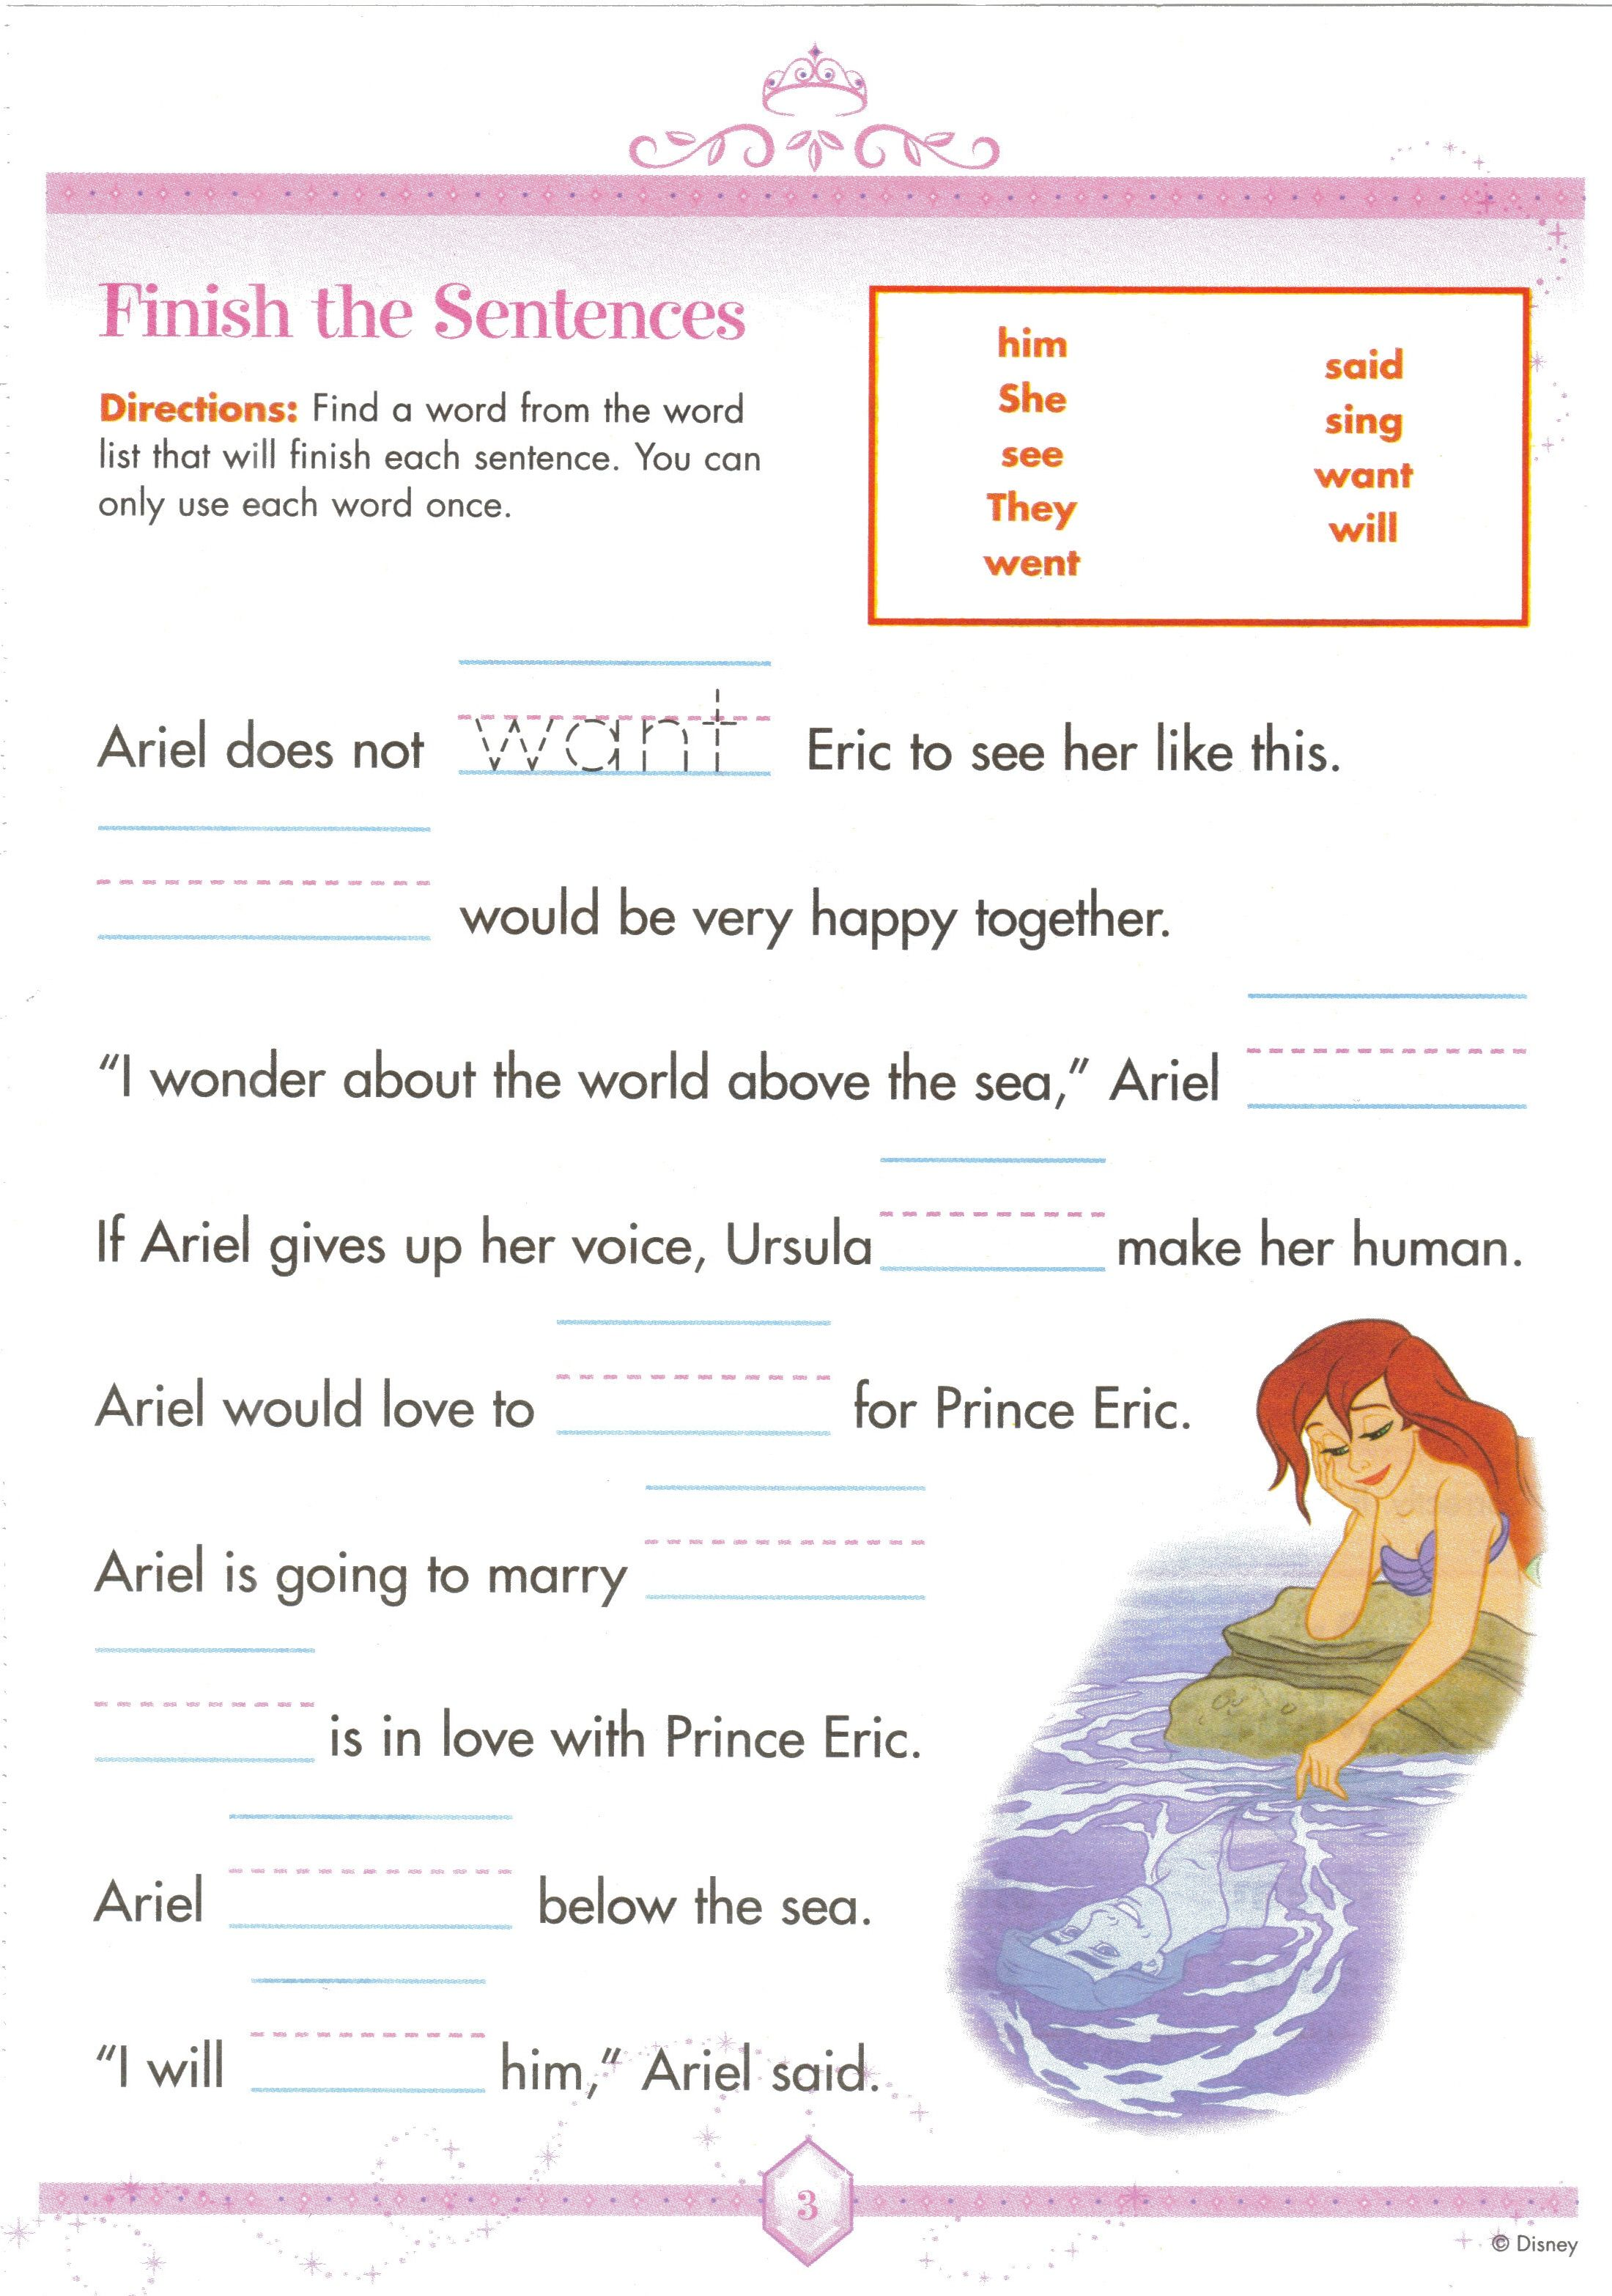 Proatmealus  Pleasing  Images About Worksheets On Pinterest  Fun Facts For Kids  With Exquisite  Images About Worksheets On Pinterest  Fun Facts For Kids Earth Day Worksheets And Jungles With Extraordinary The Prodigal Son Worksheets Also Number Pattern Worksheets Grade  In Addition Addition And Subtraction Word Problems Worksheets Rd Grade And Kg Worksheets English As Well As Math Perimeter And Area Worksheets Additionally Calculating Area Worksheet From Pinterestcom With Proatmealus  Exquisite  Images About Worksheets On Pinterest  Fun Facts For Kids  With Extraordinary  Images About Worksheets On Pinterest  Fun Facts For Kids Earth Day Worksheets And Jungles And Pleasing The Prodigal Son Worksheets Also Number Pattern Worksheets Grade  In Addition Addition And Subtraction Word Problems Worksheets Rd Grade From Pinterestcom